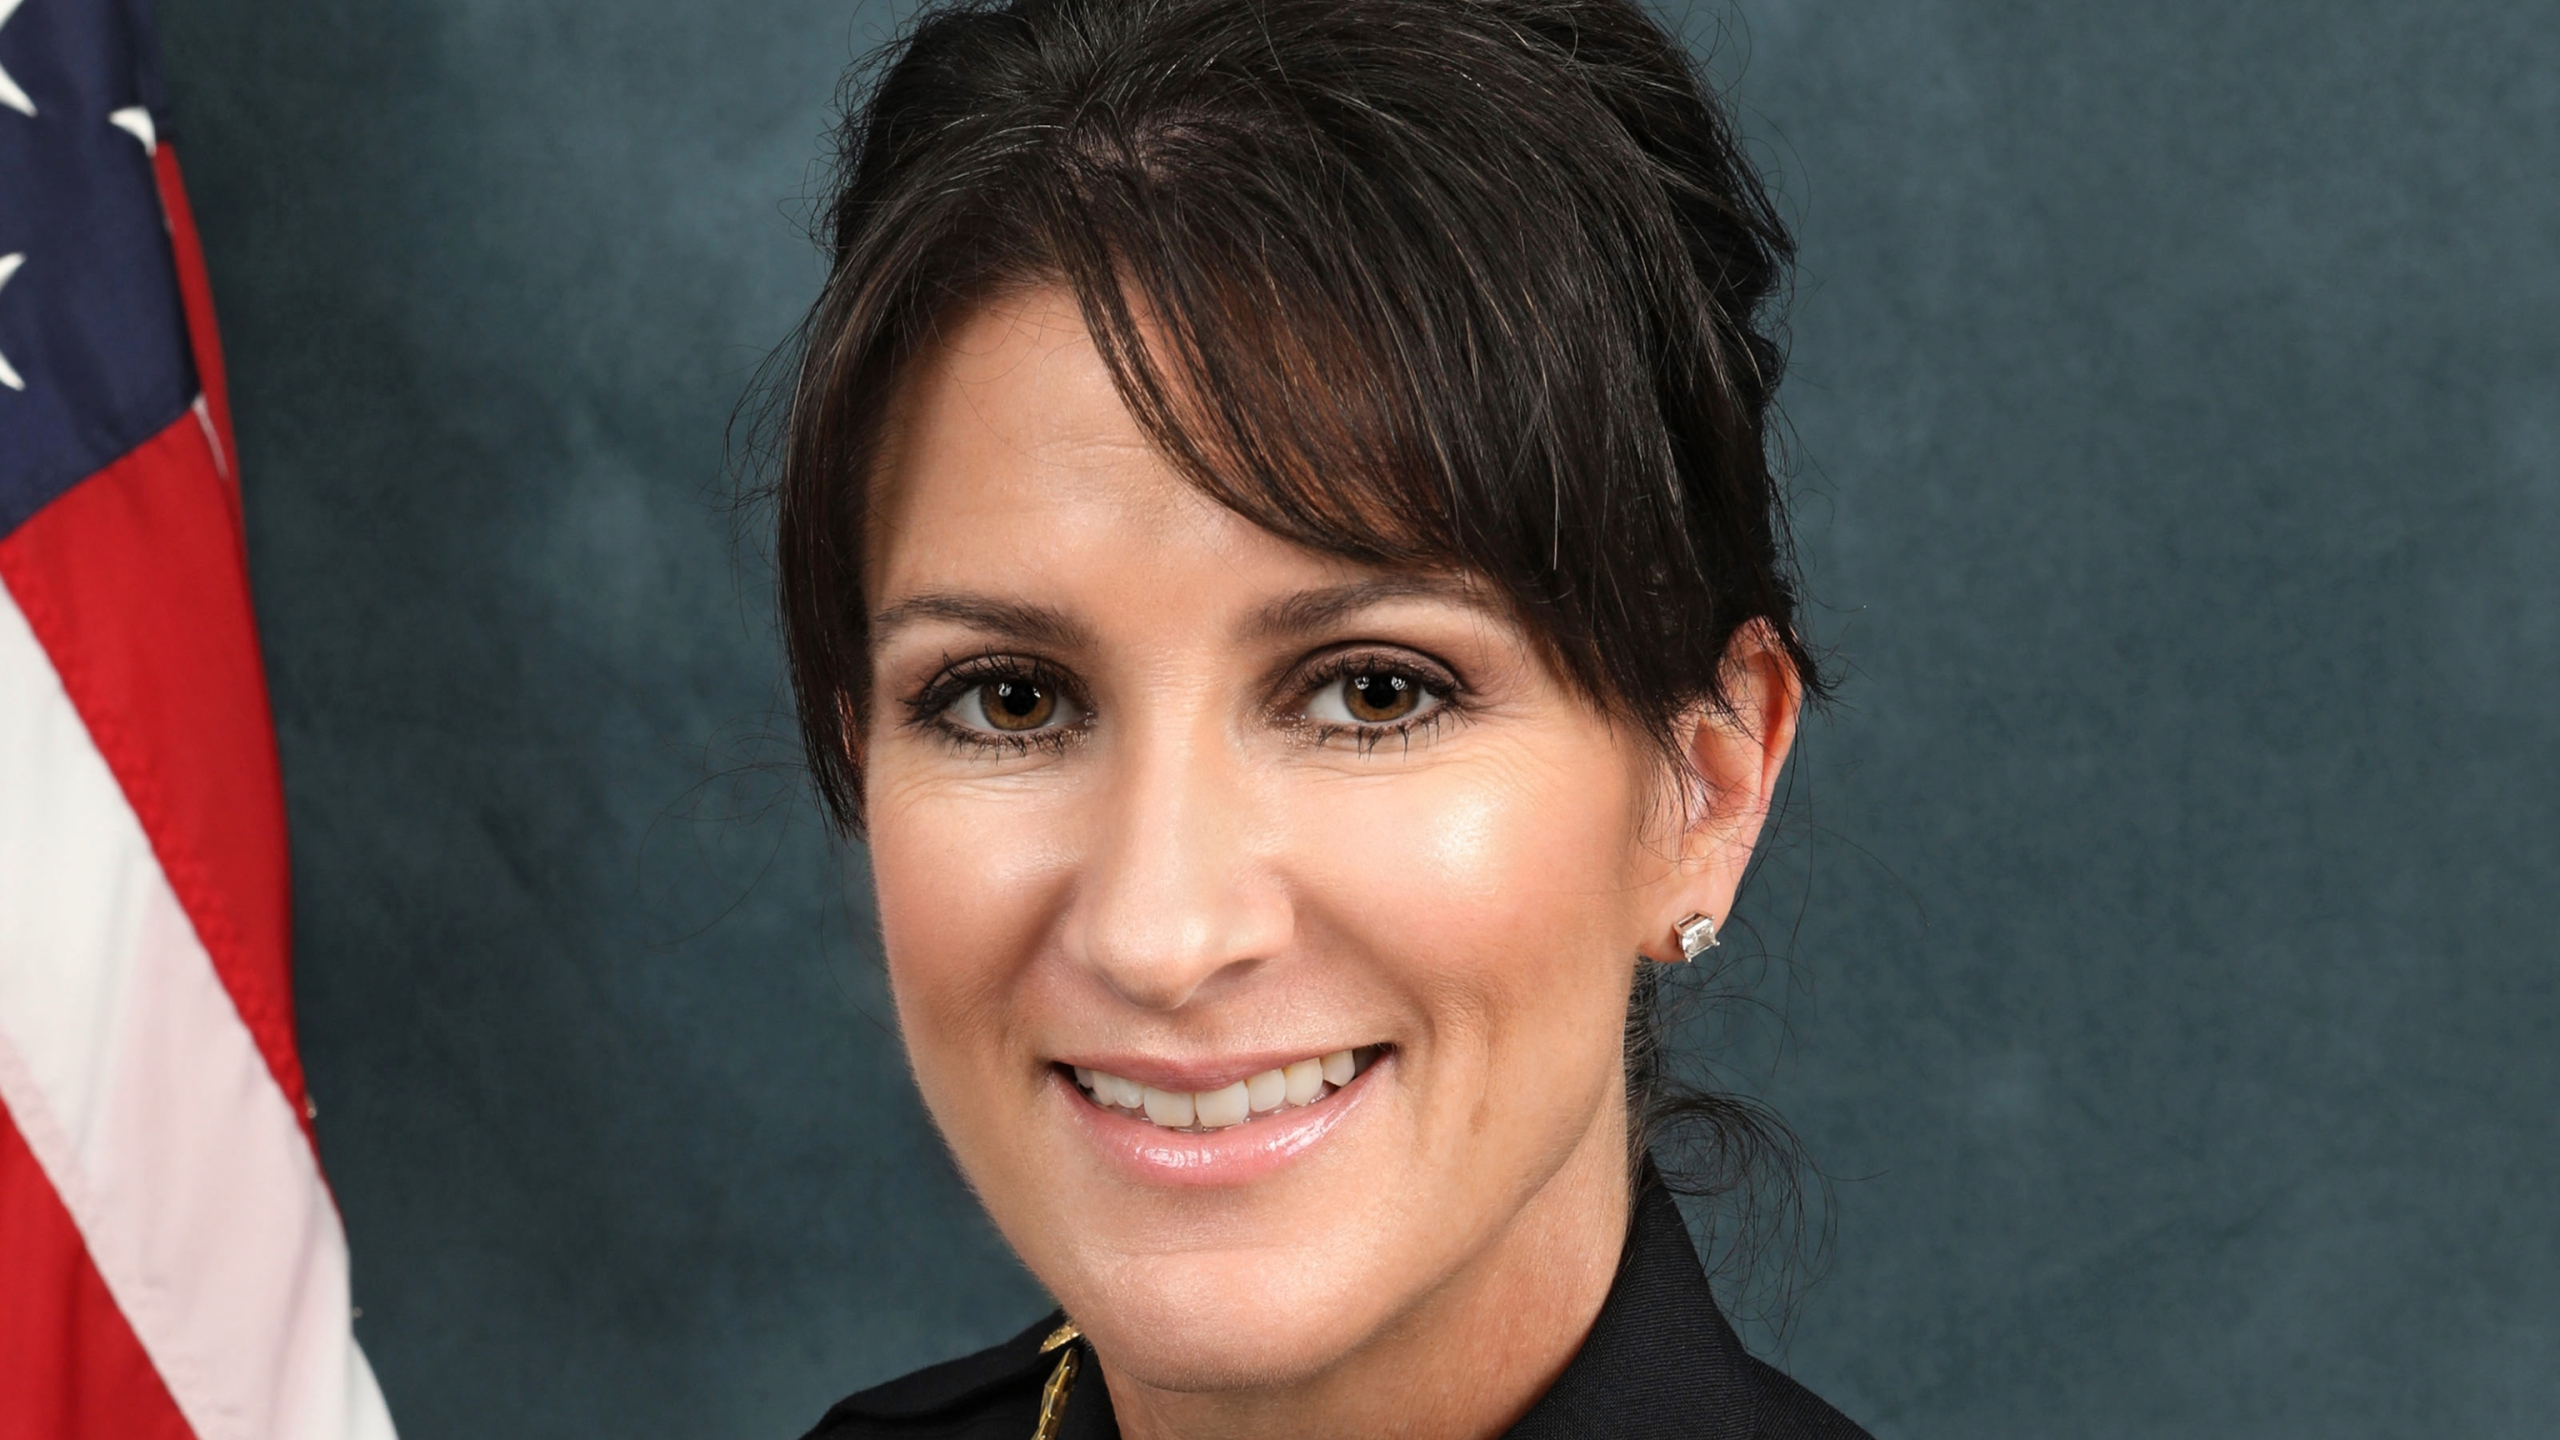 Santa Monica police Chief Cynthia Renaud is seen in her official portrait from the department's website.